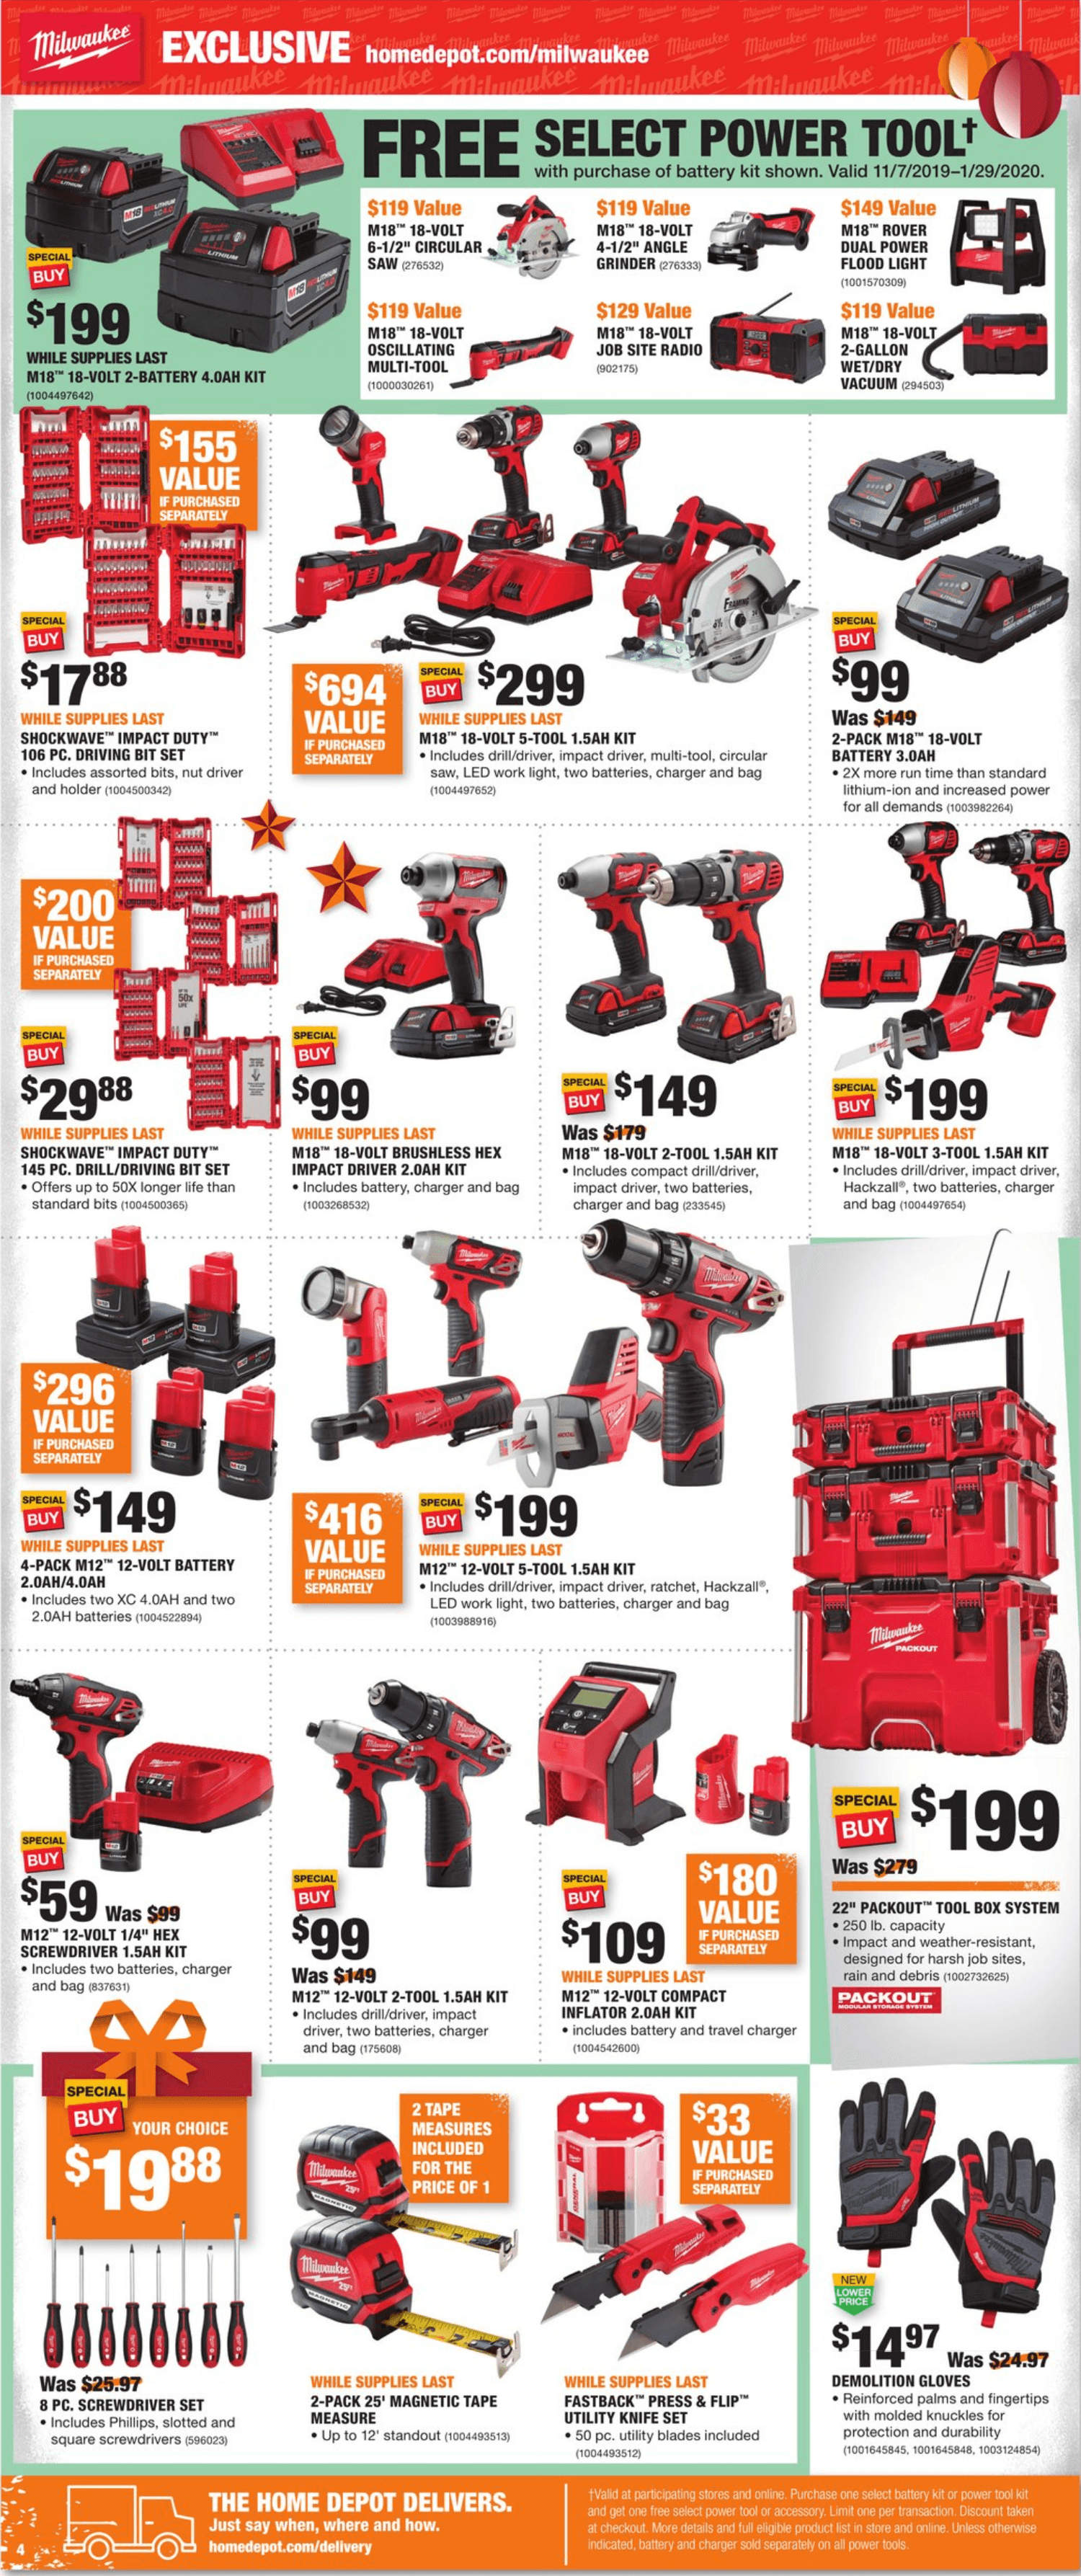 Home Depot Black Friday 2019 Page 4